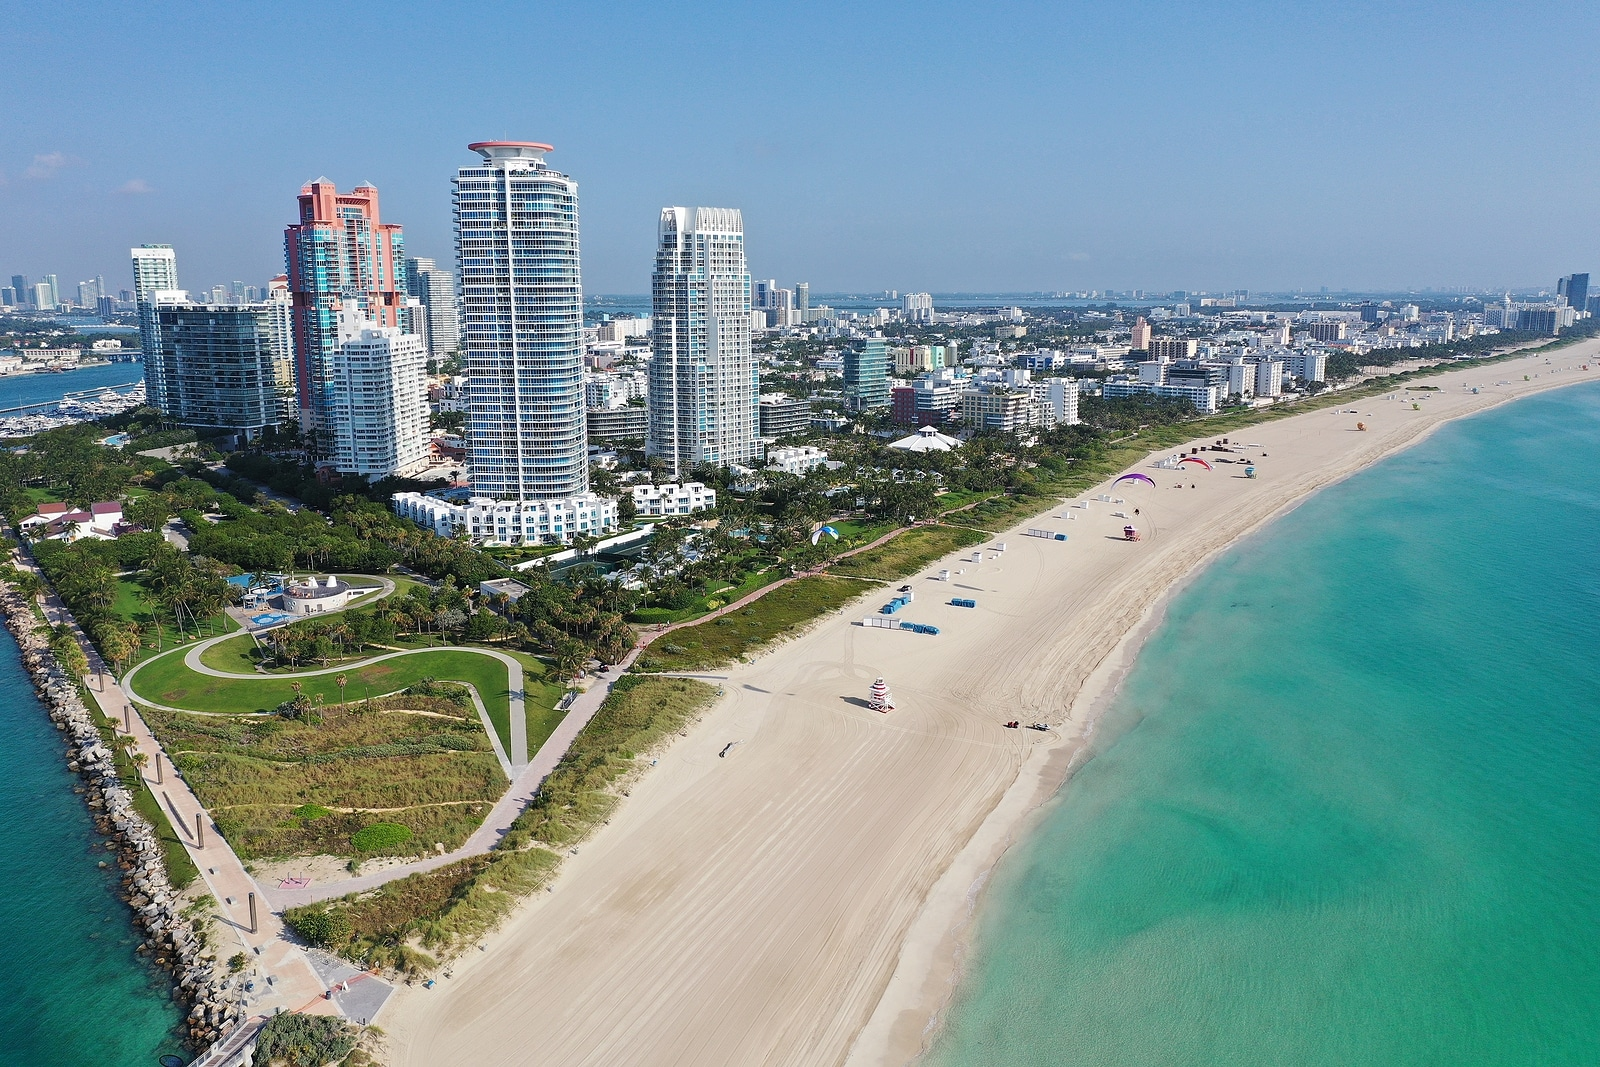 Aerial view of South Pointe Park and South Beach in Miami